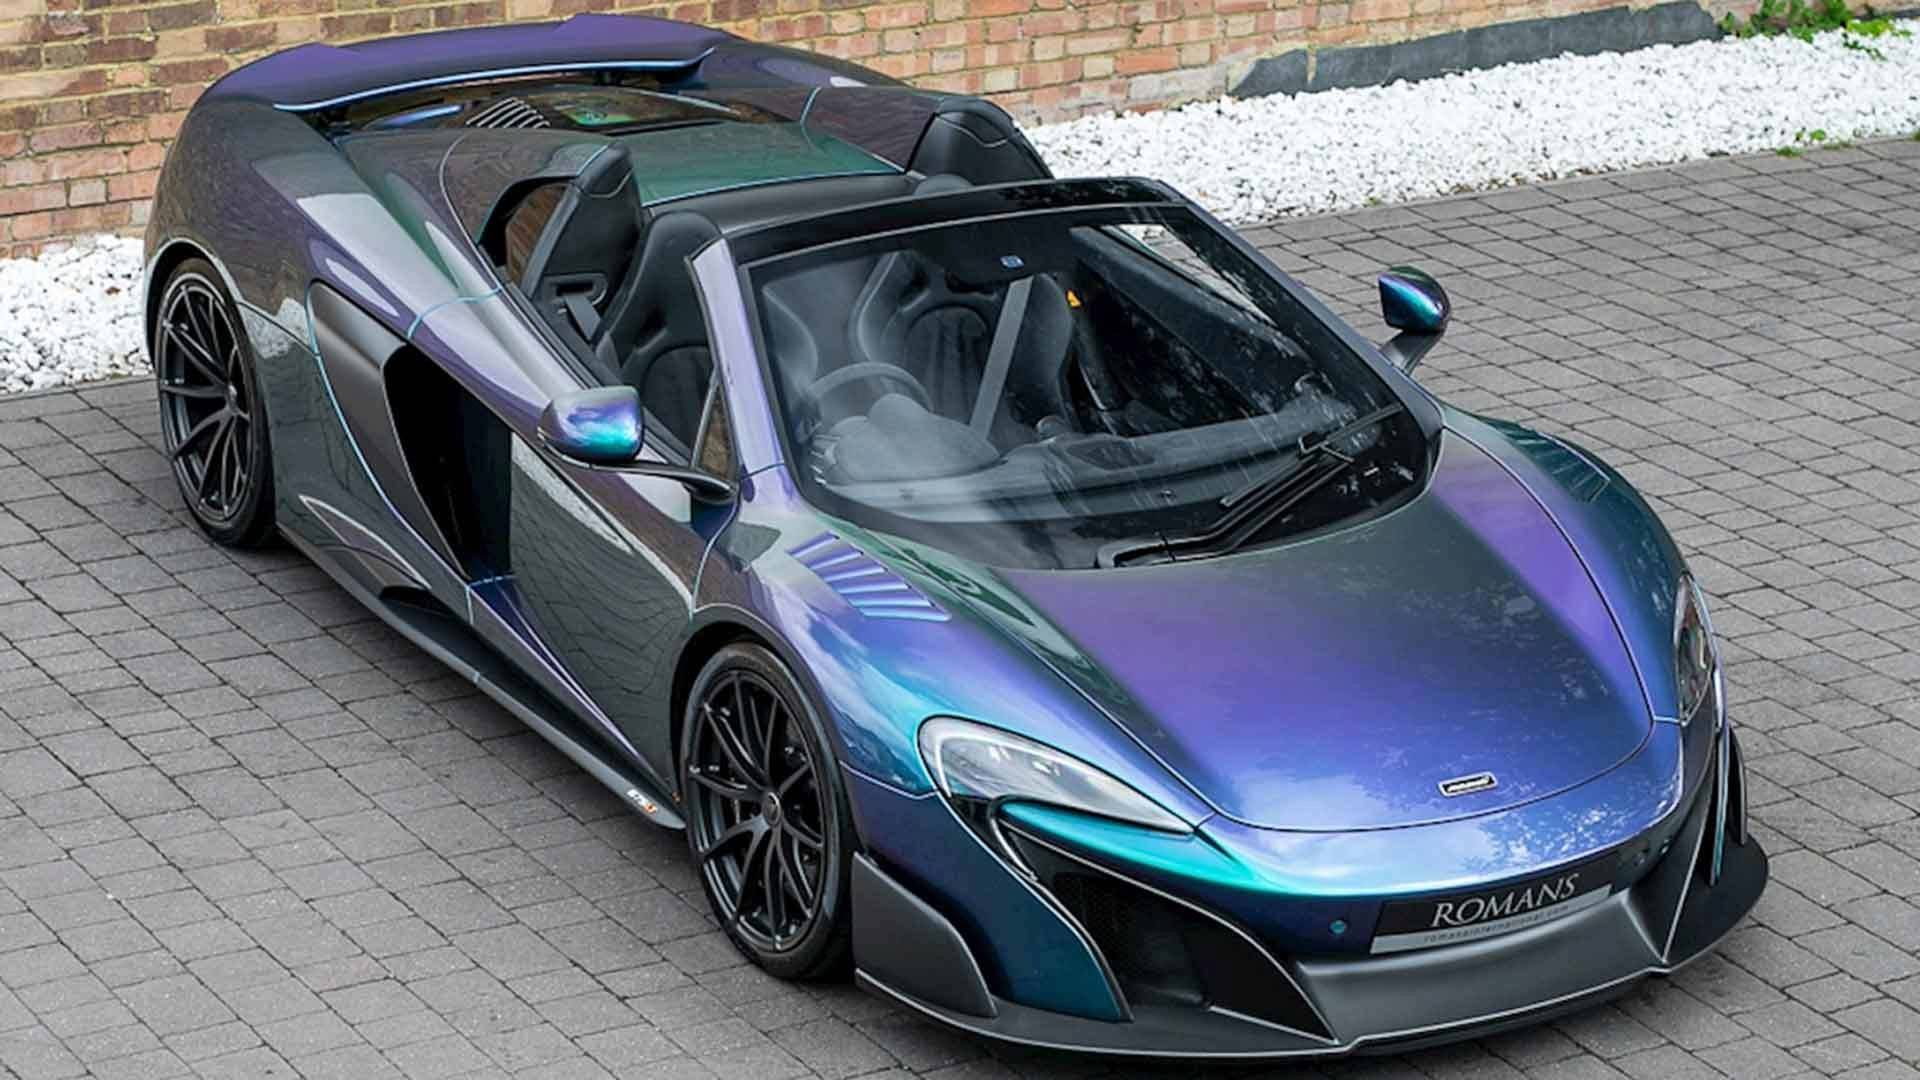 mclaren-675lt-spider-in-chameleon-paint (10)